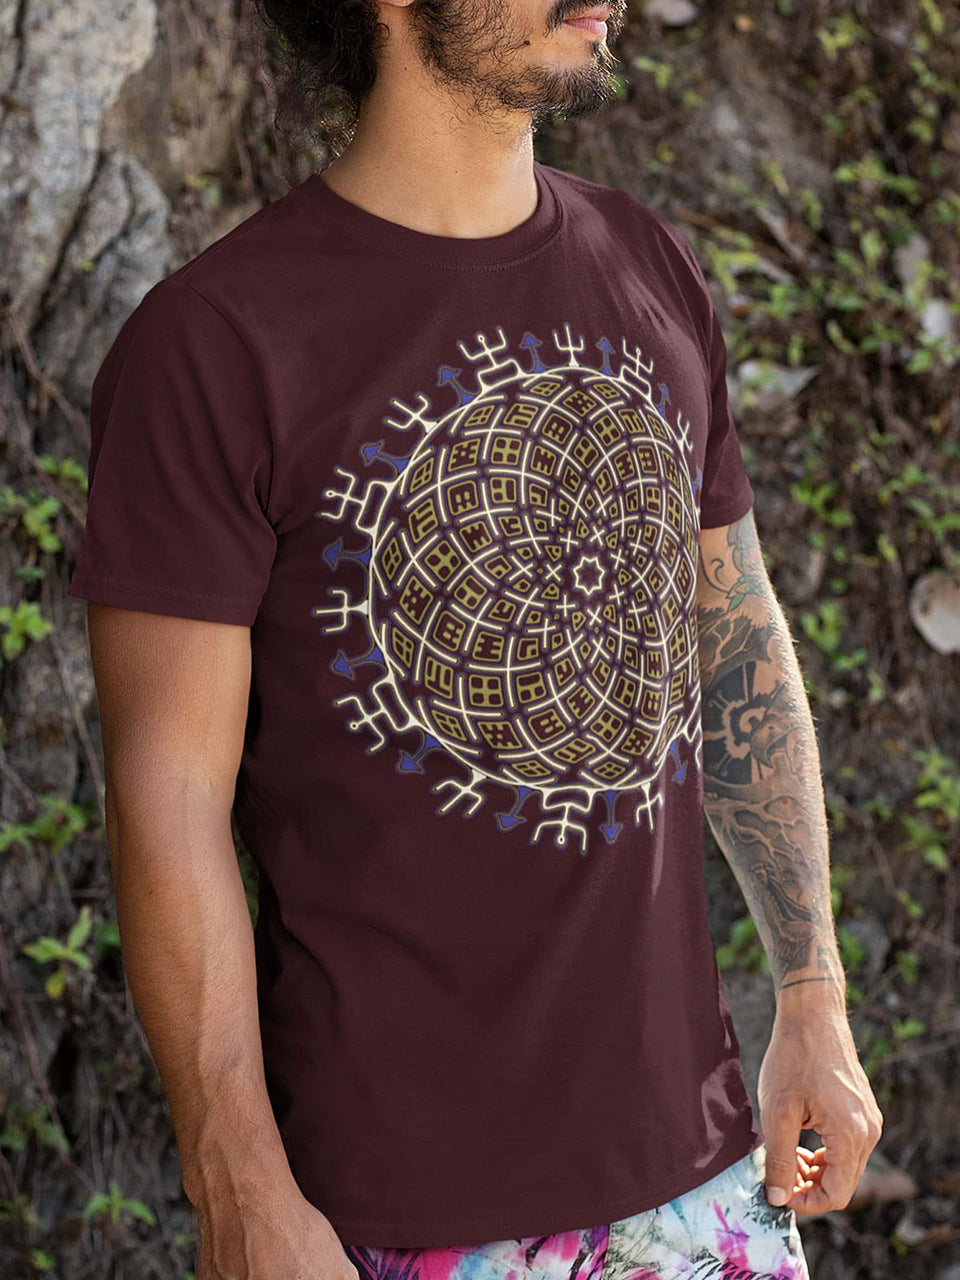 Vortex Cross Made To Order Men T-Shirt - Burgundy